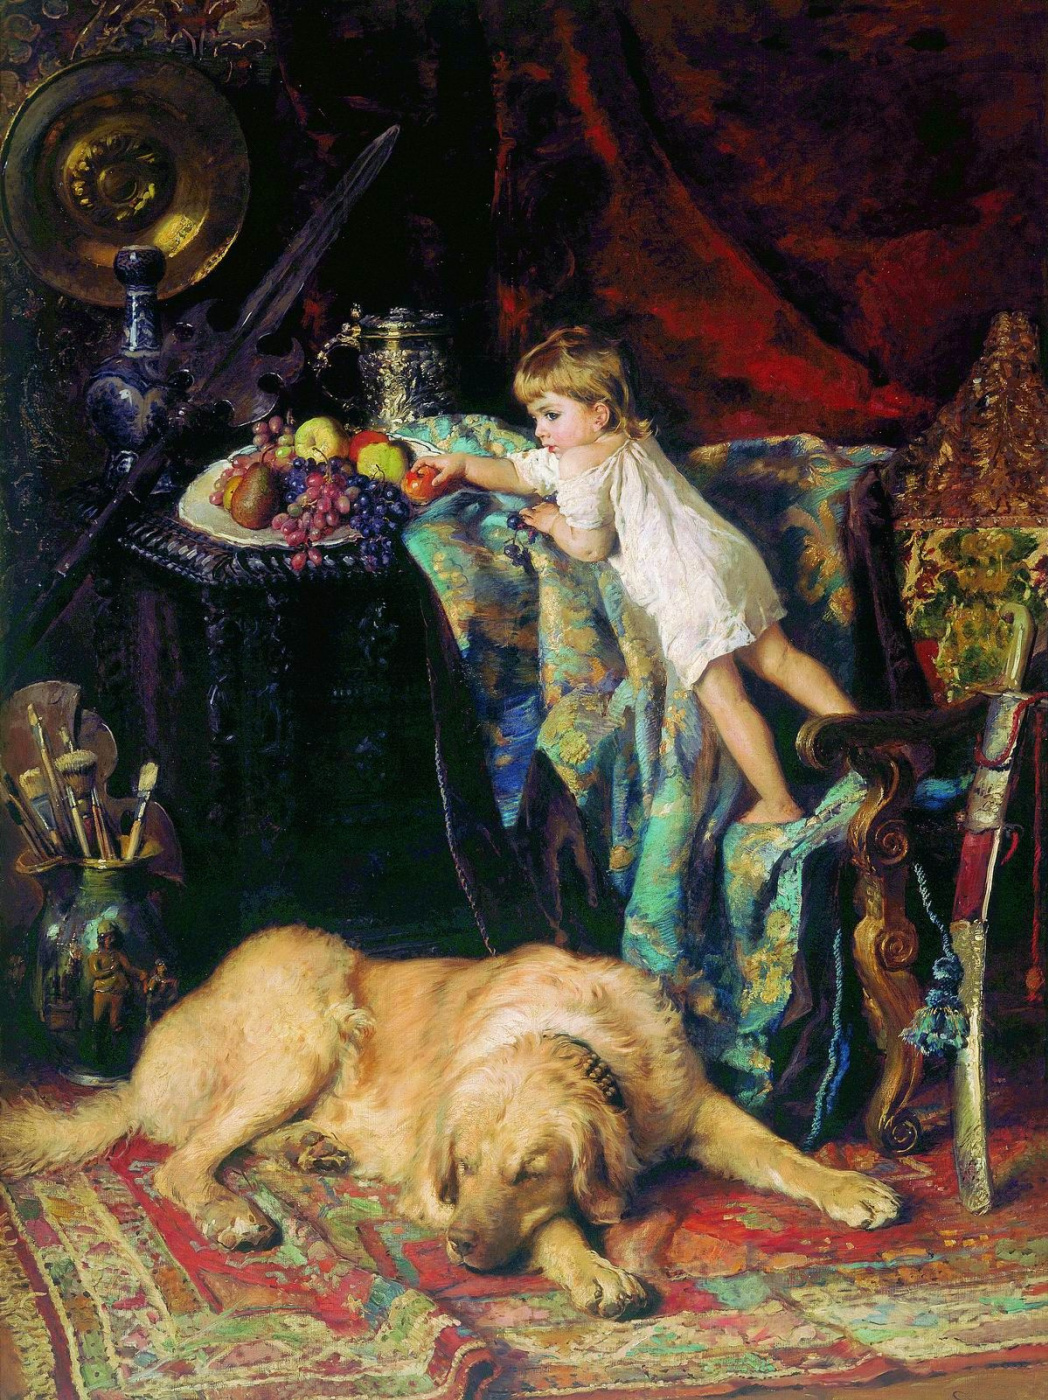 Konstantin Makovsky. In the artist's Studio (the Little thief)